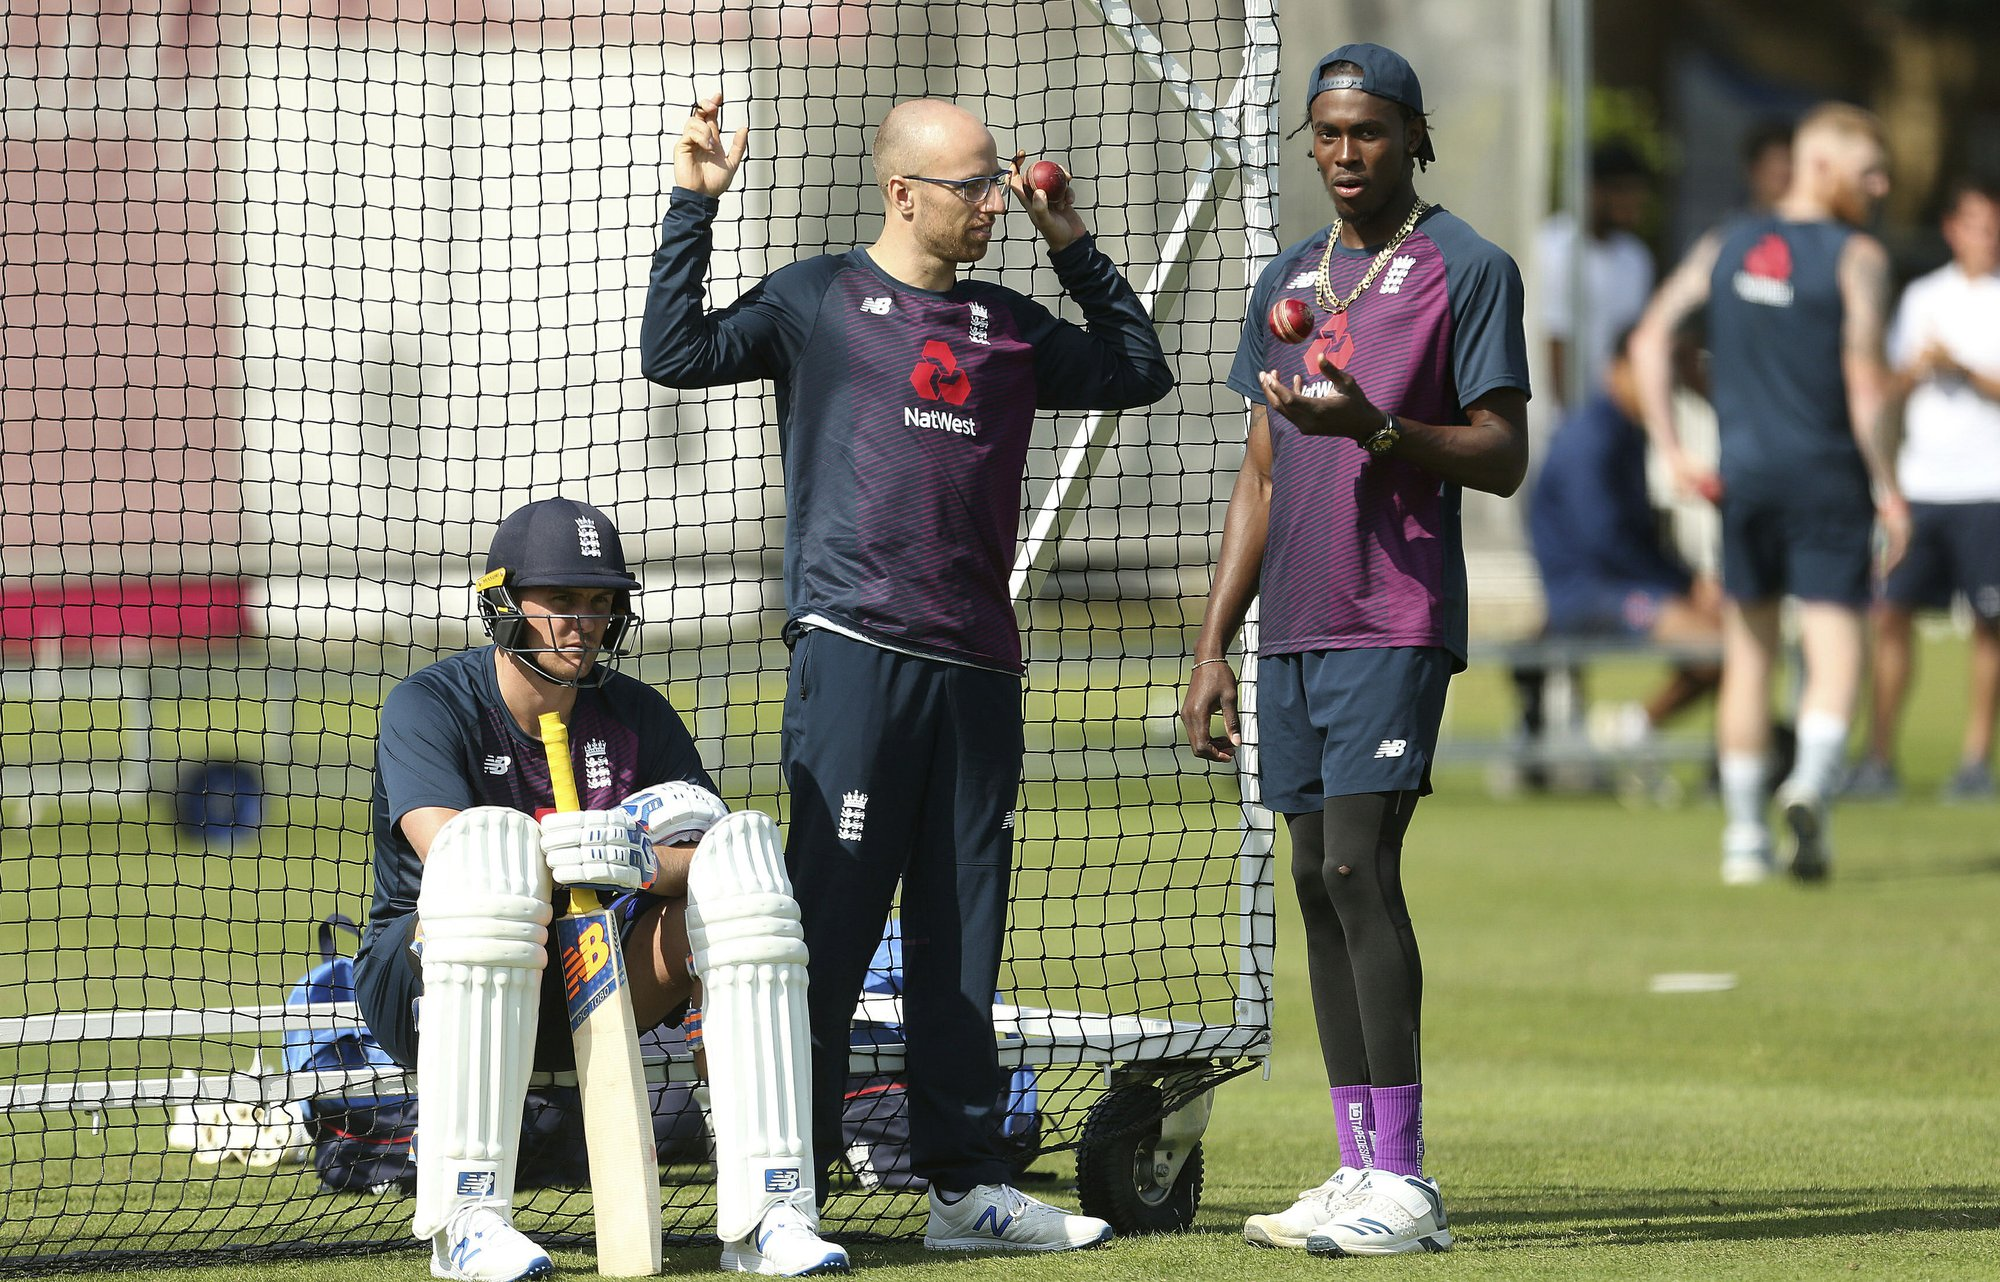 Roy passes concussion test, set to play in 3rd Ashes test